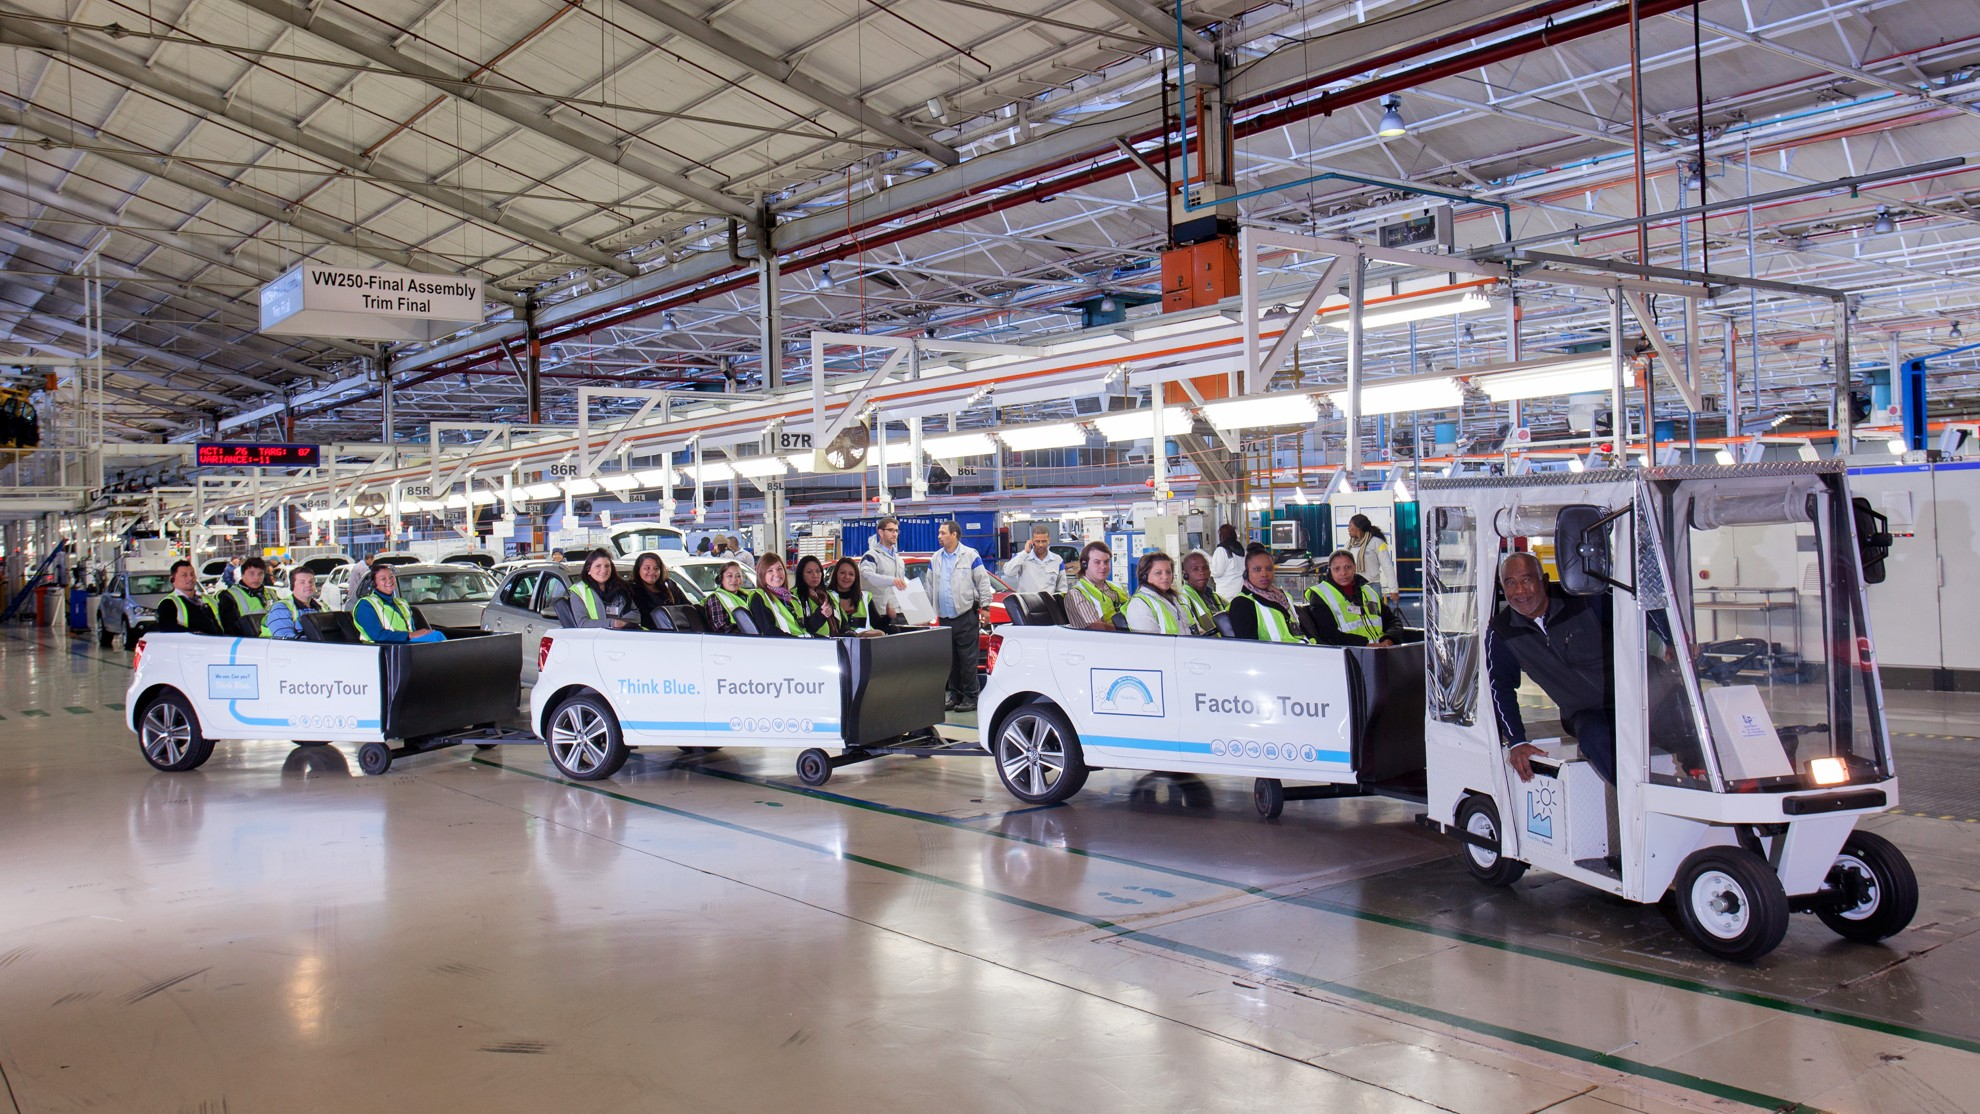 Car Manufacturers In South Africa Volkswagen Factory Tour South Africa